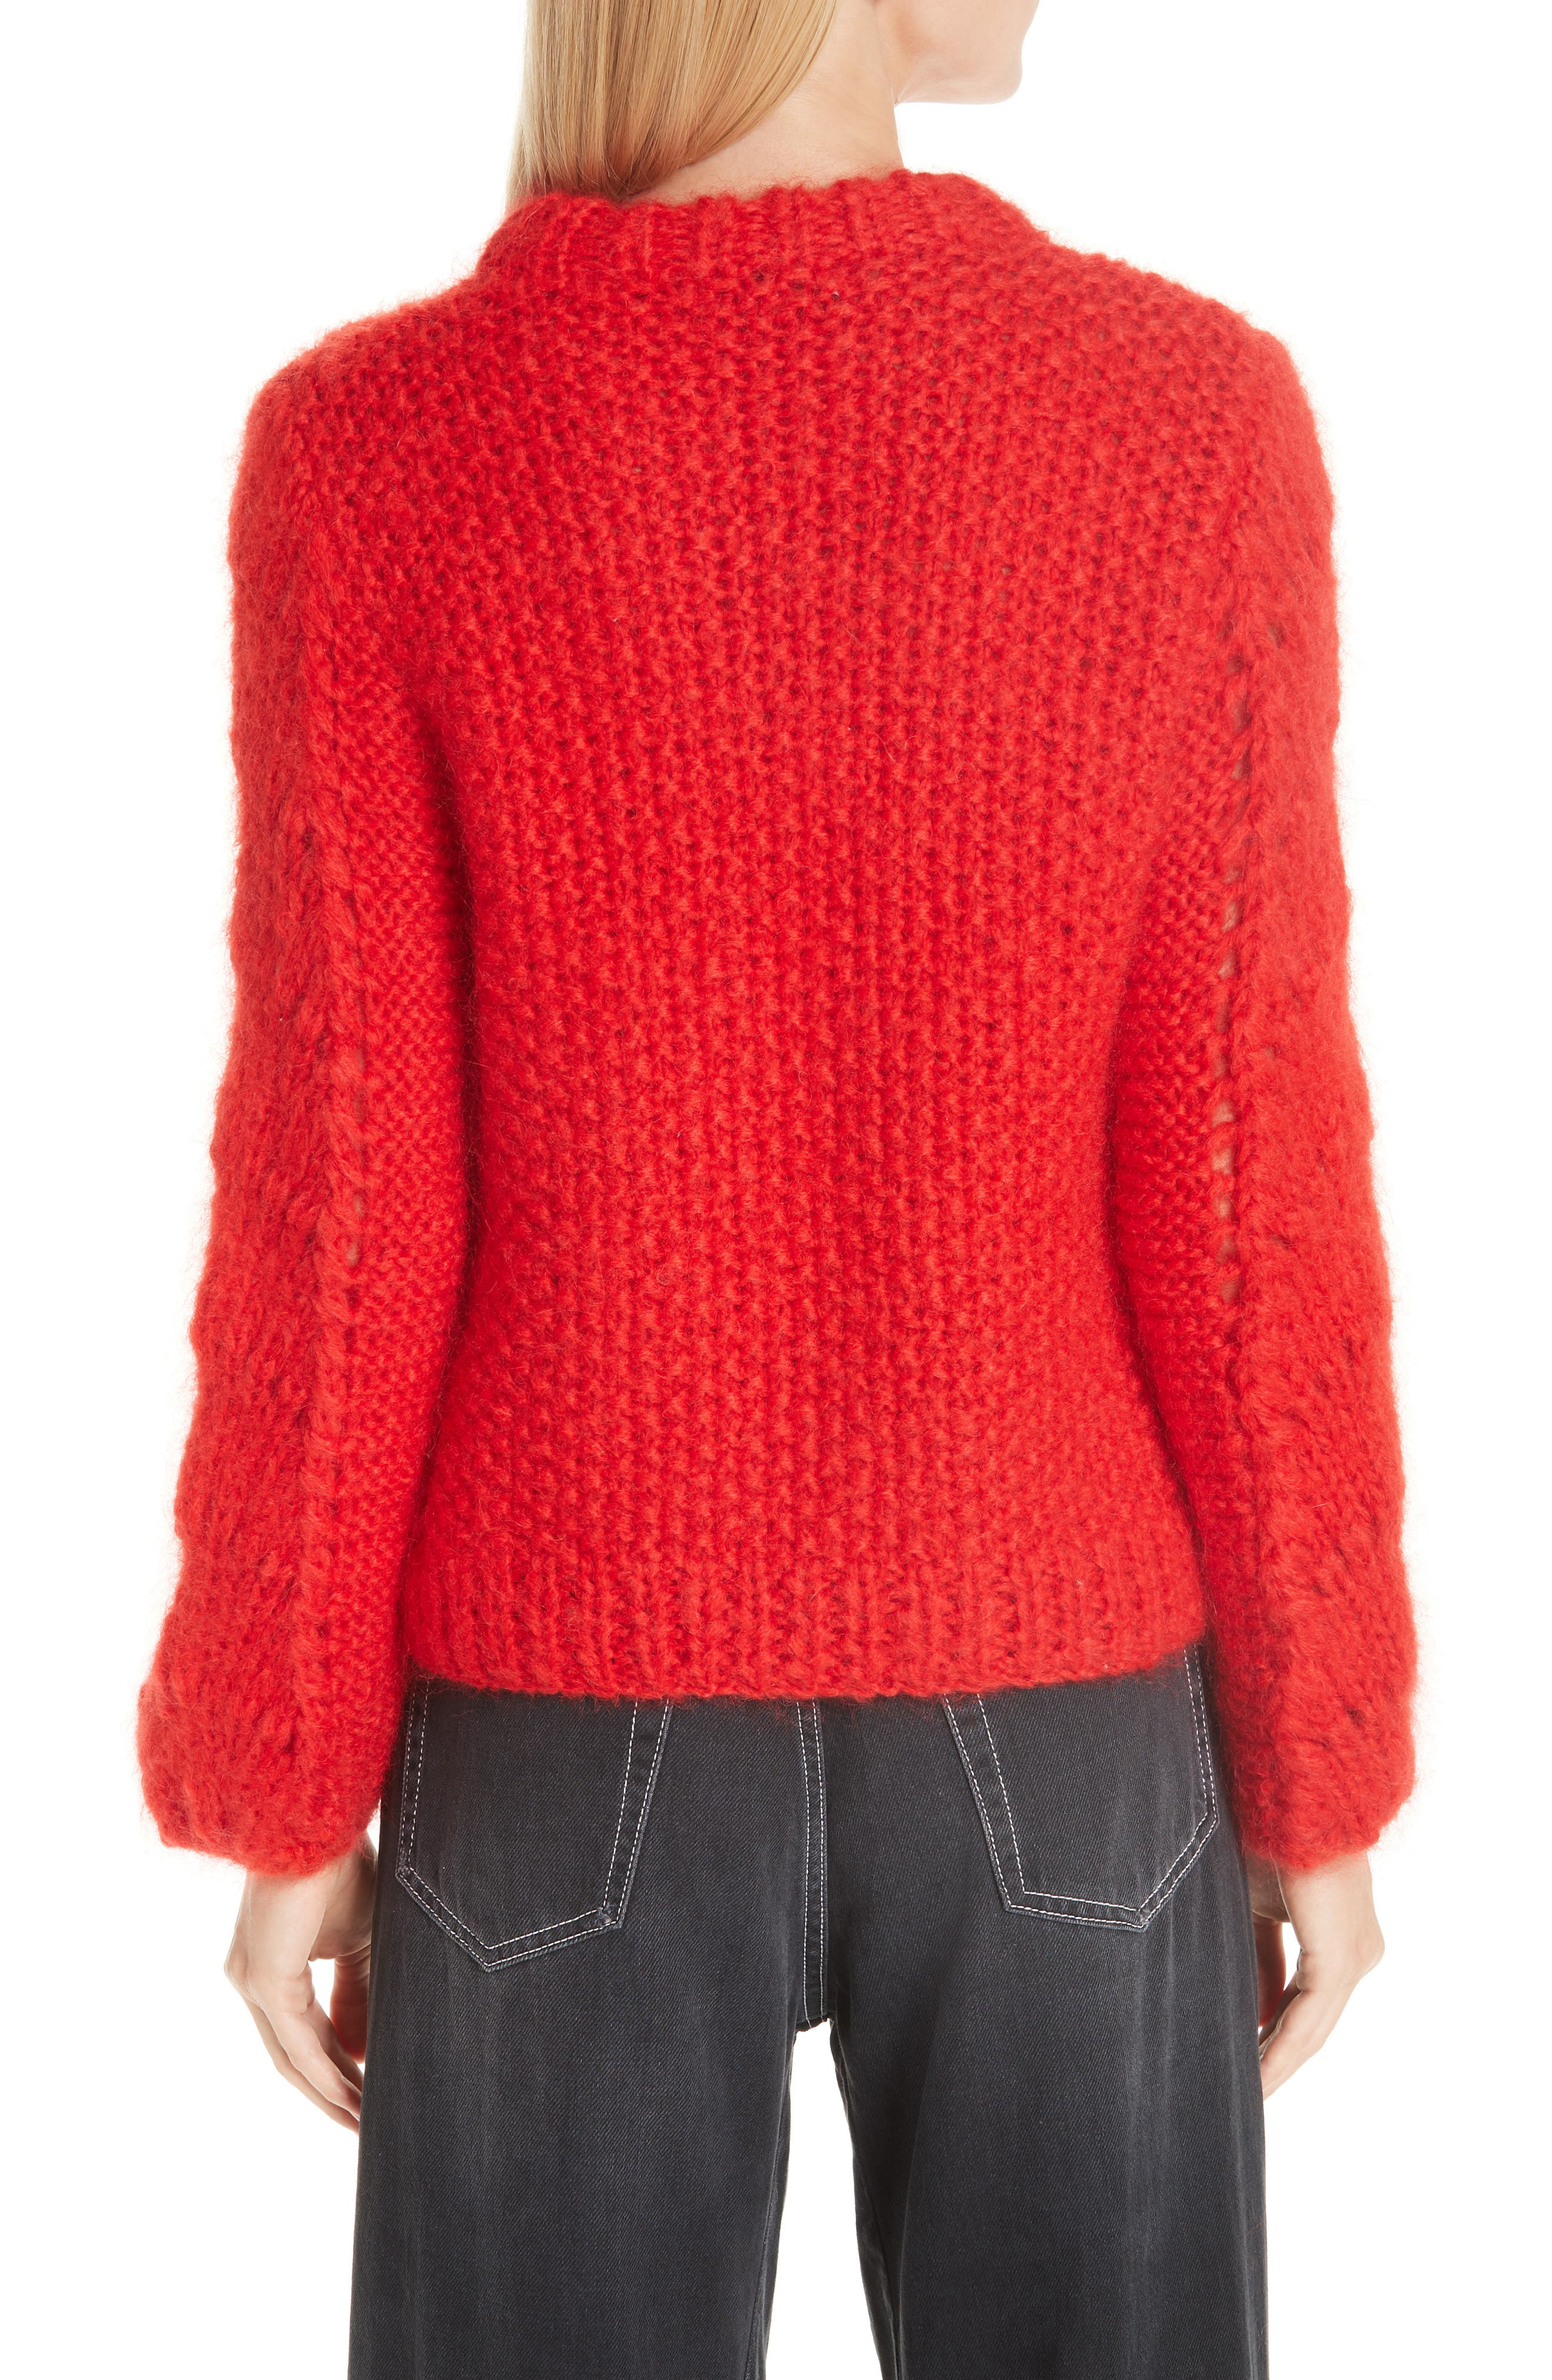 GANNI,                             Mohair & Wool Sweater,                             Alternate thumbnail 2, color,                             FIERY RED 403